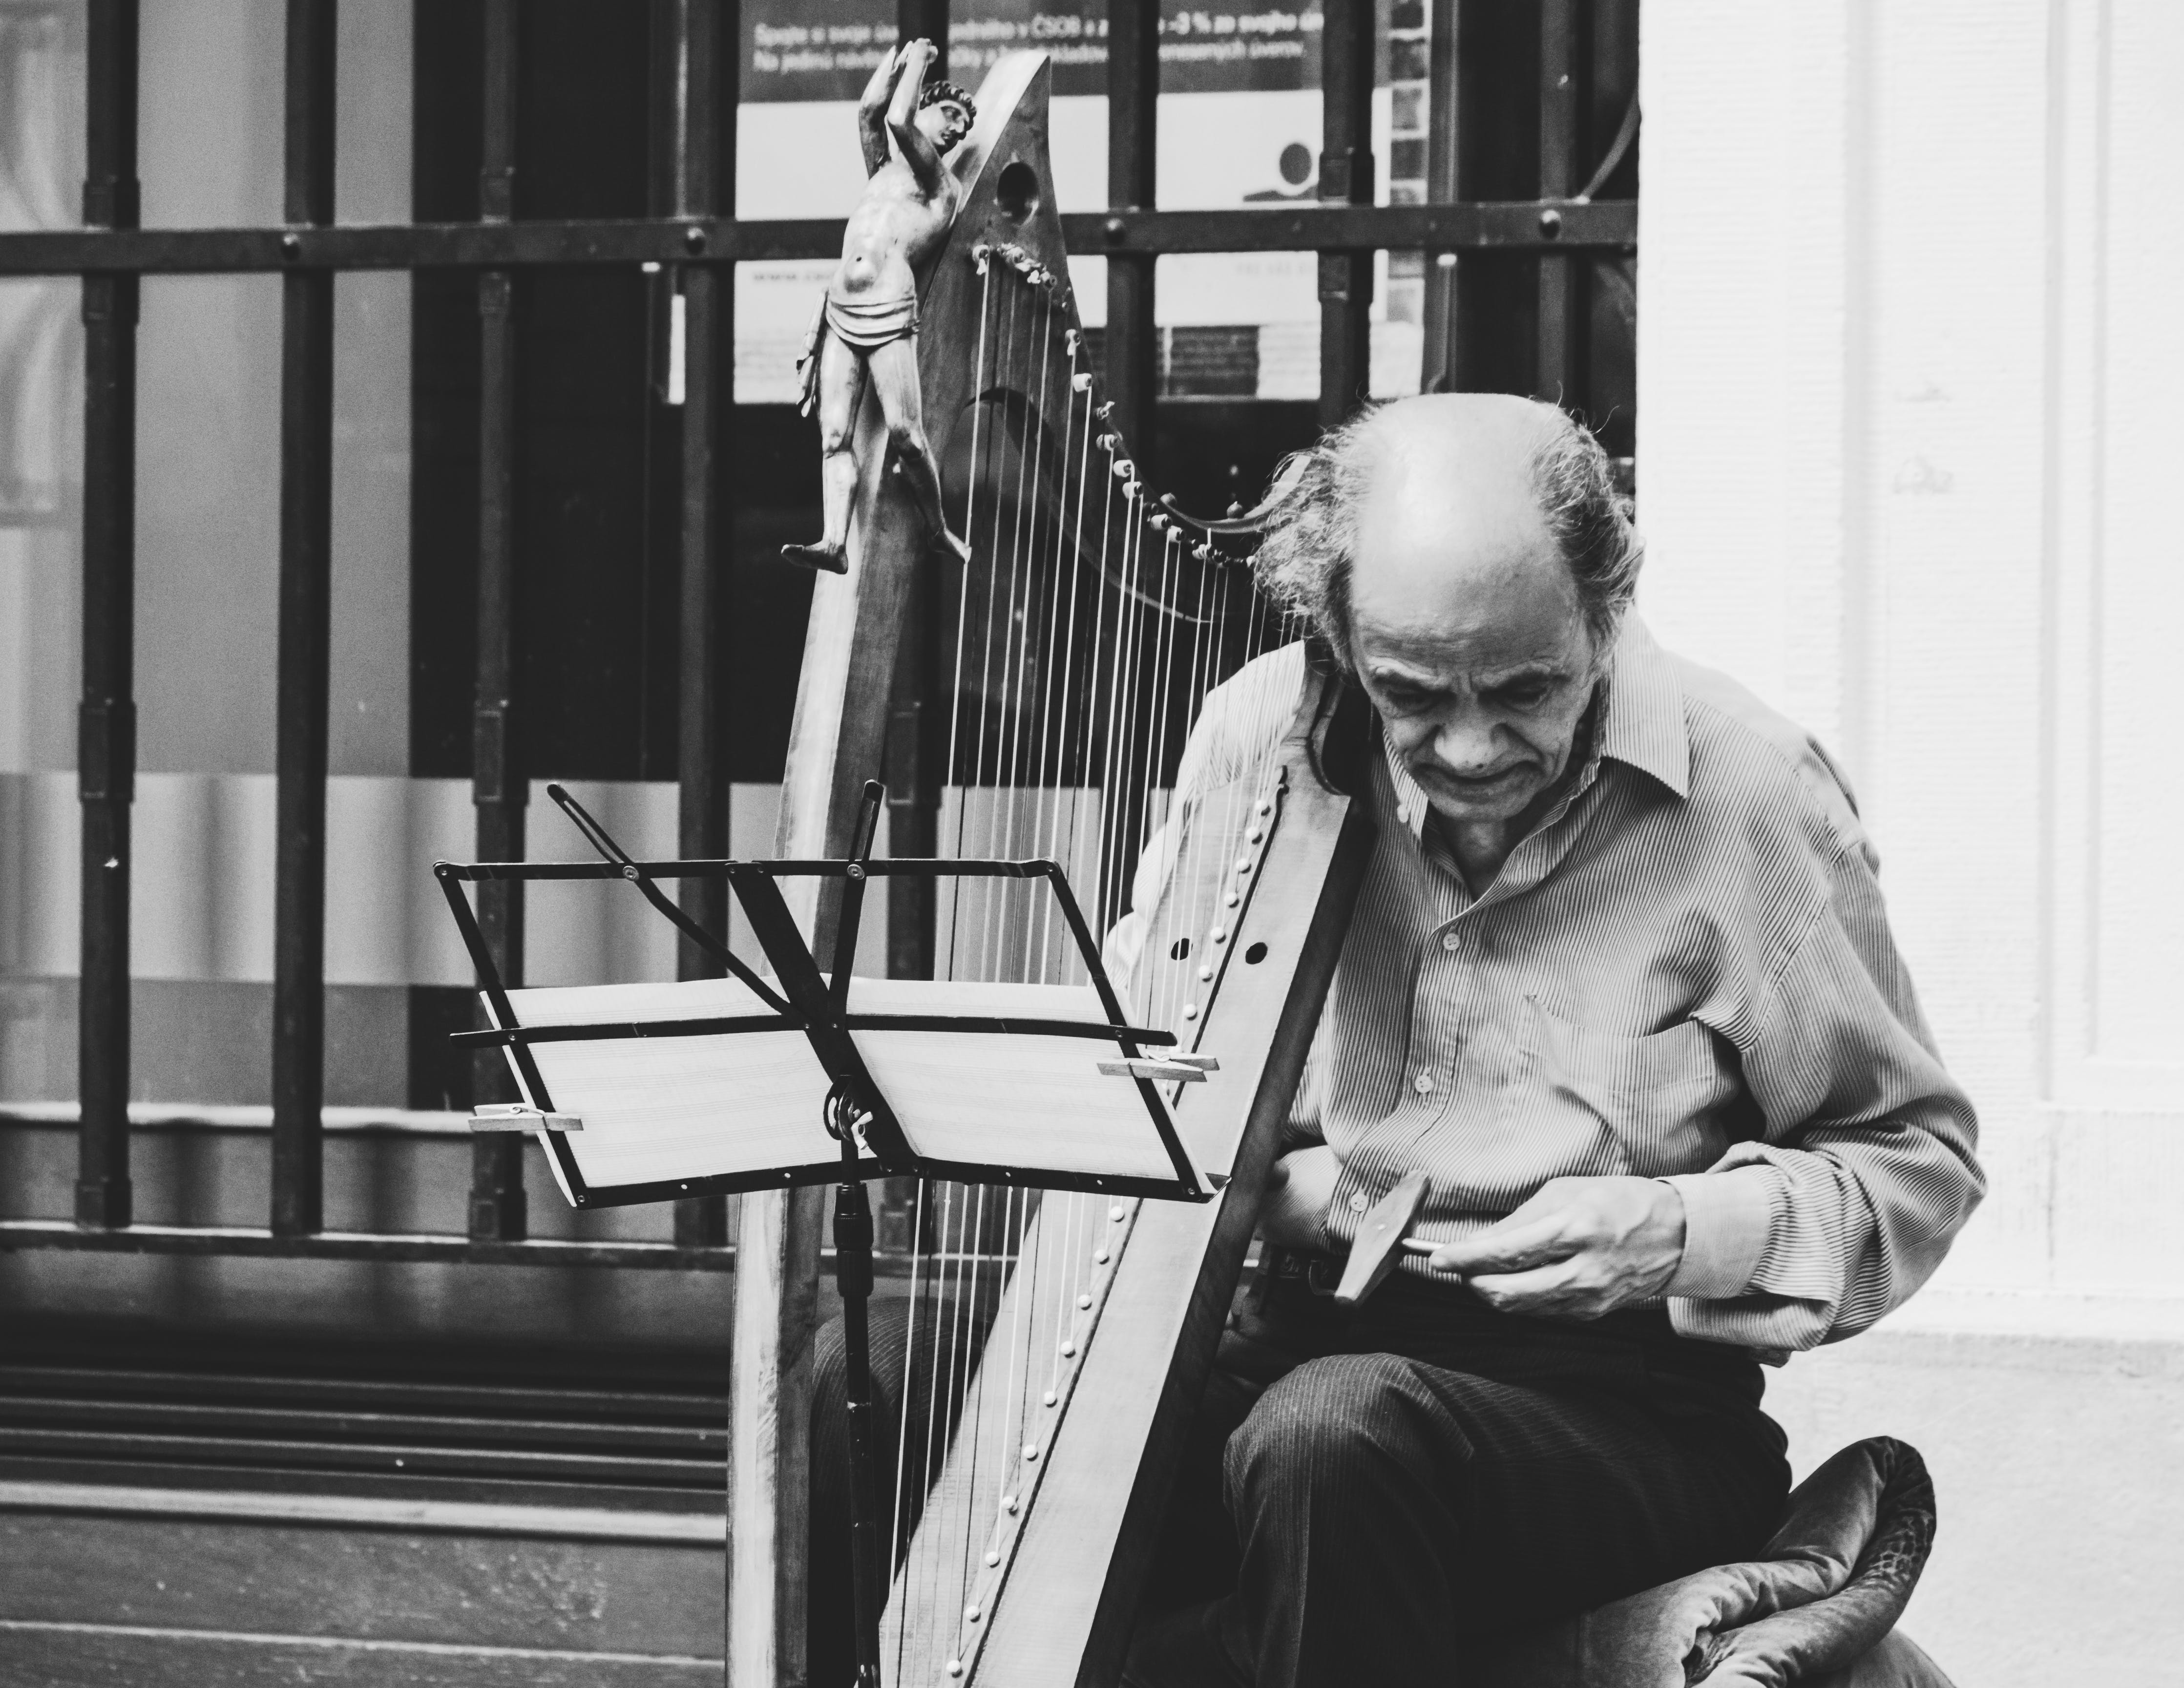 Greyscale Photo of Man Holding Harp